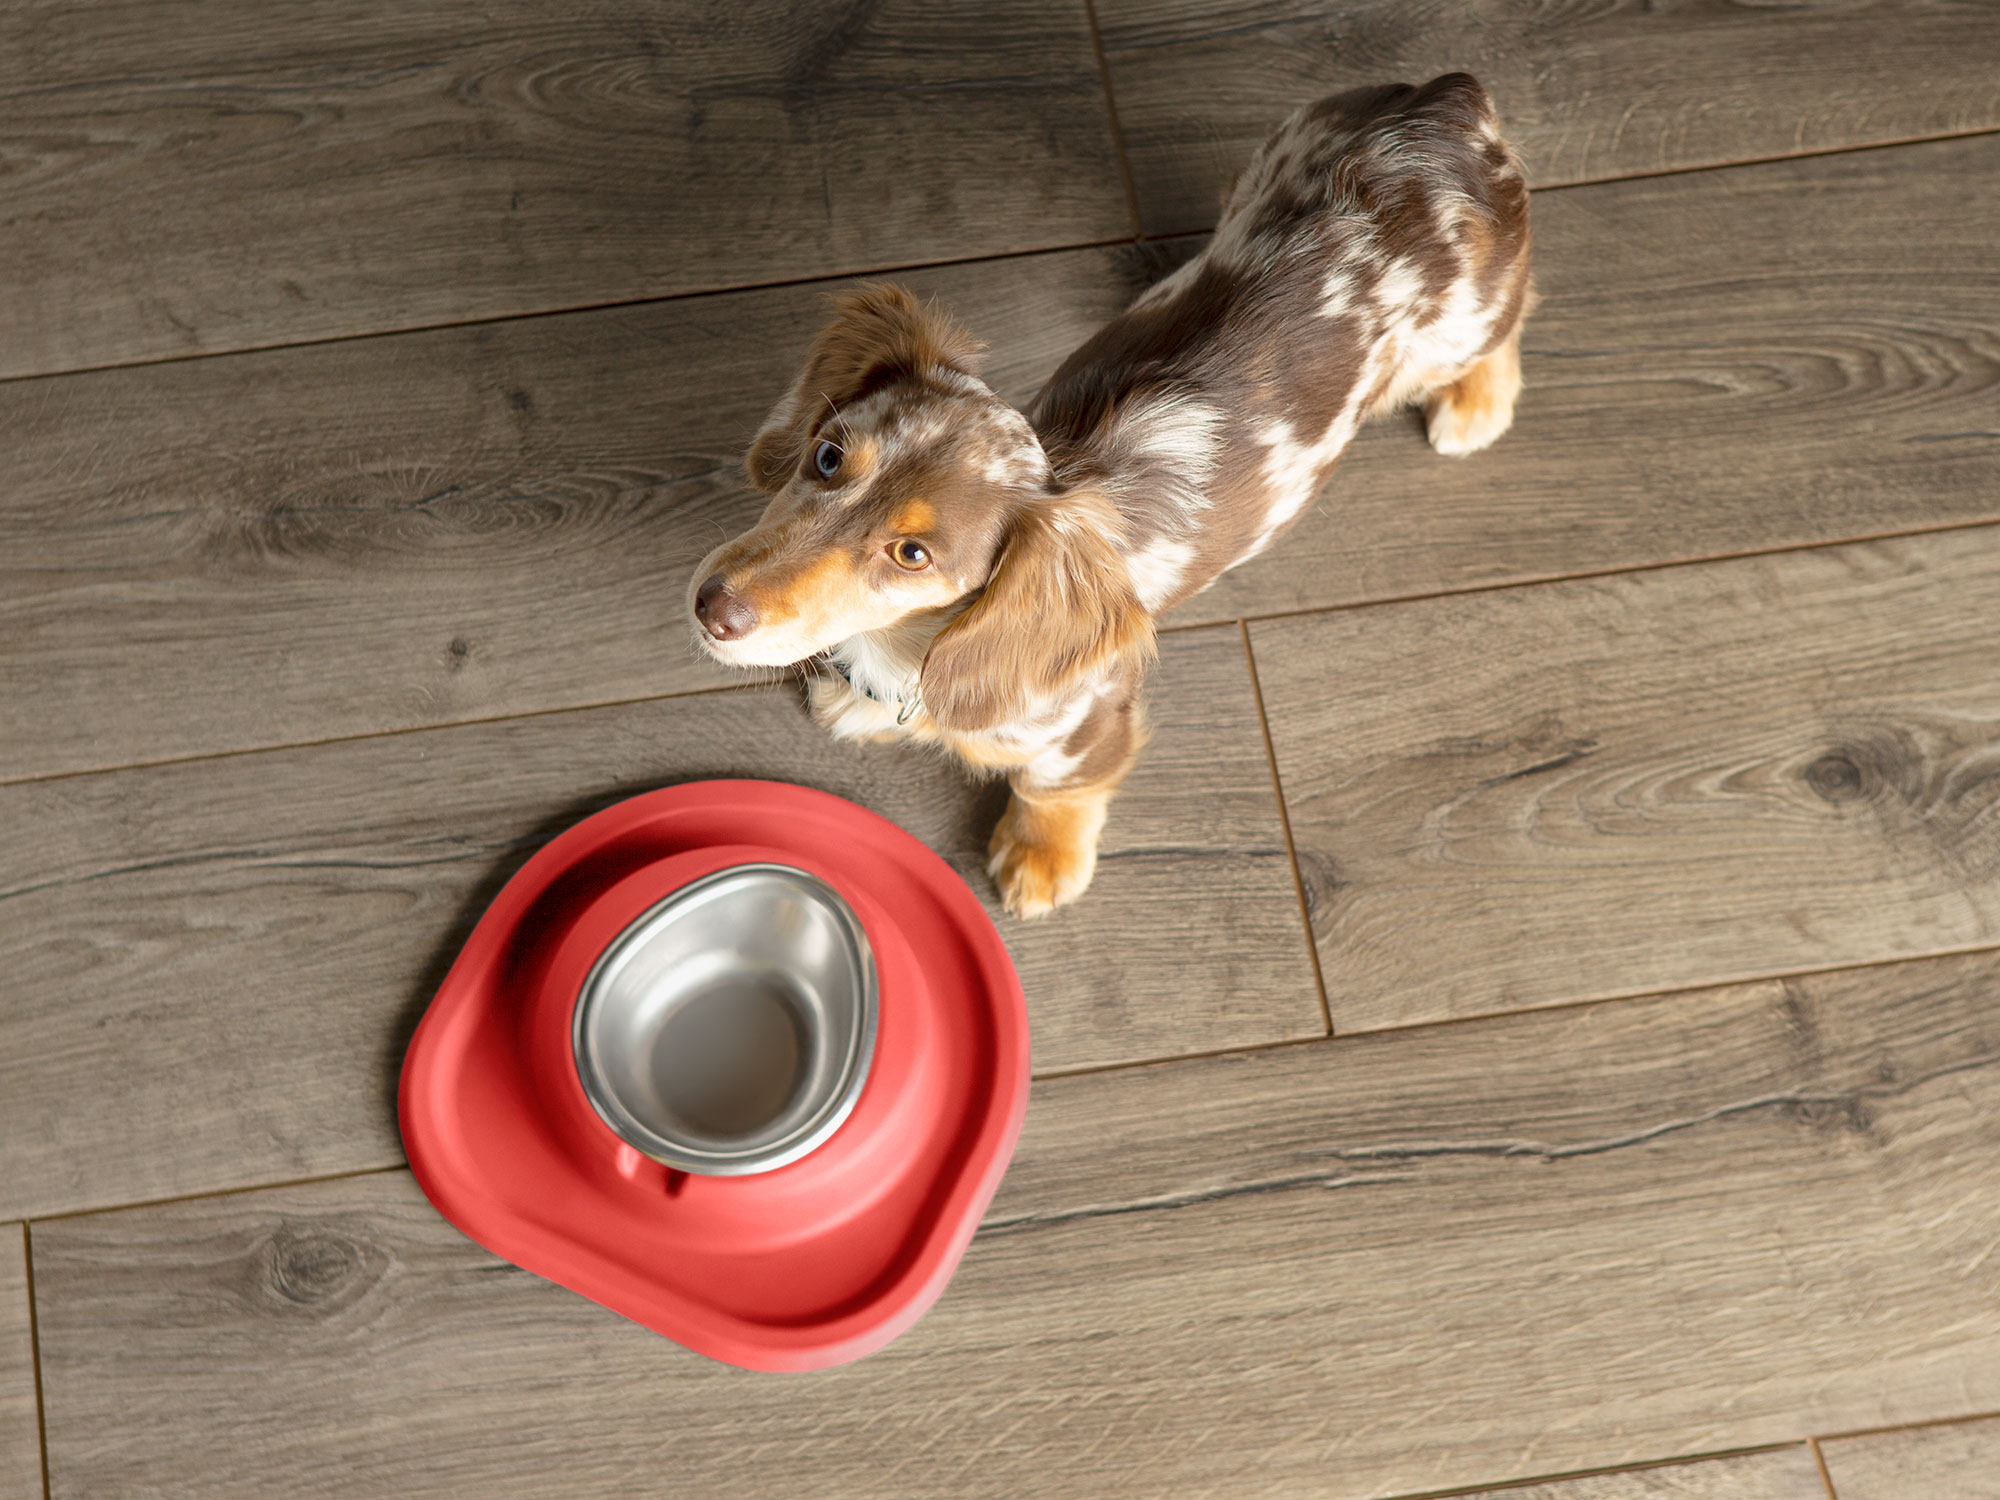 WeatherTech dog bowls are available in all different sizes for all pooches.